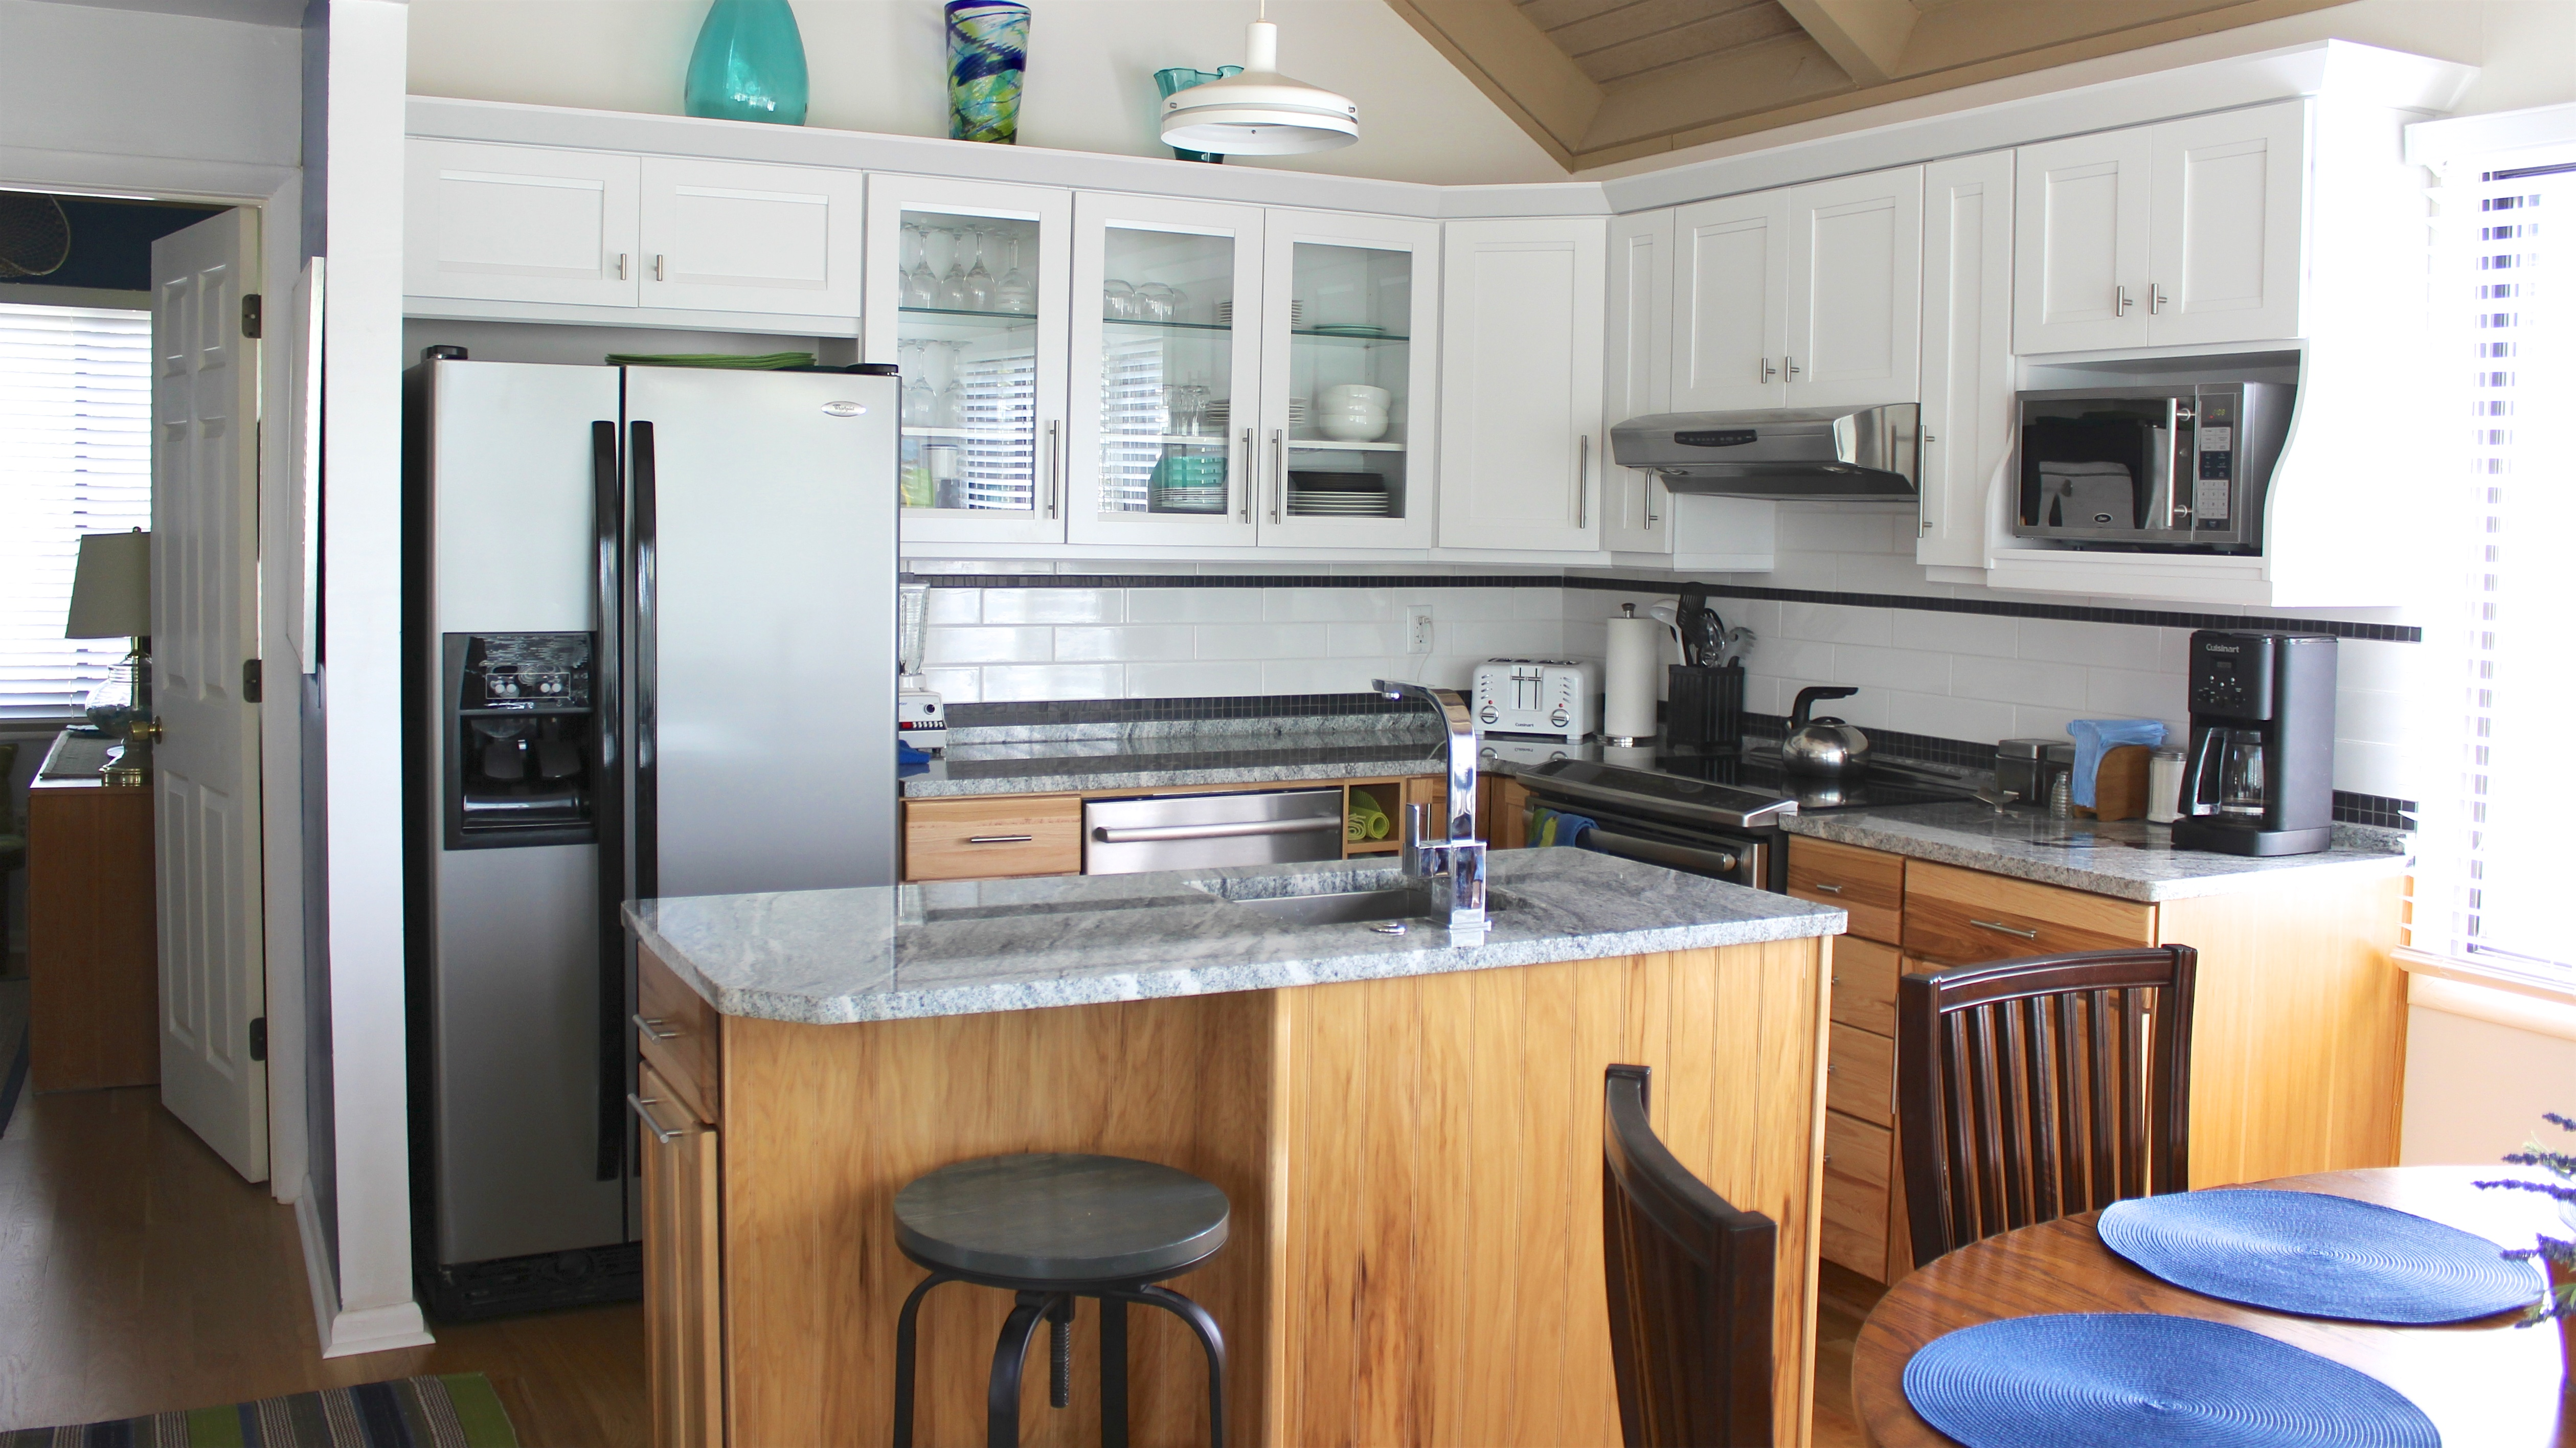 Stainless steel appliances and granite counters compliment this beautiful kitchen!